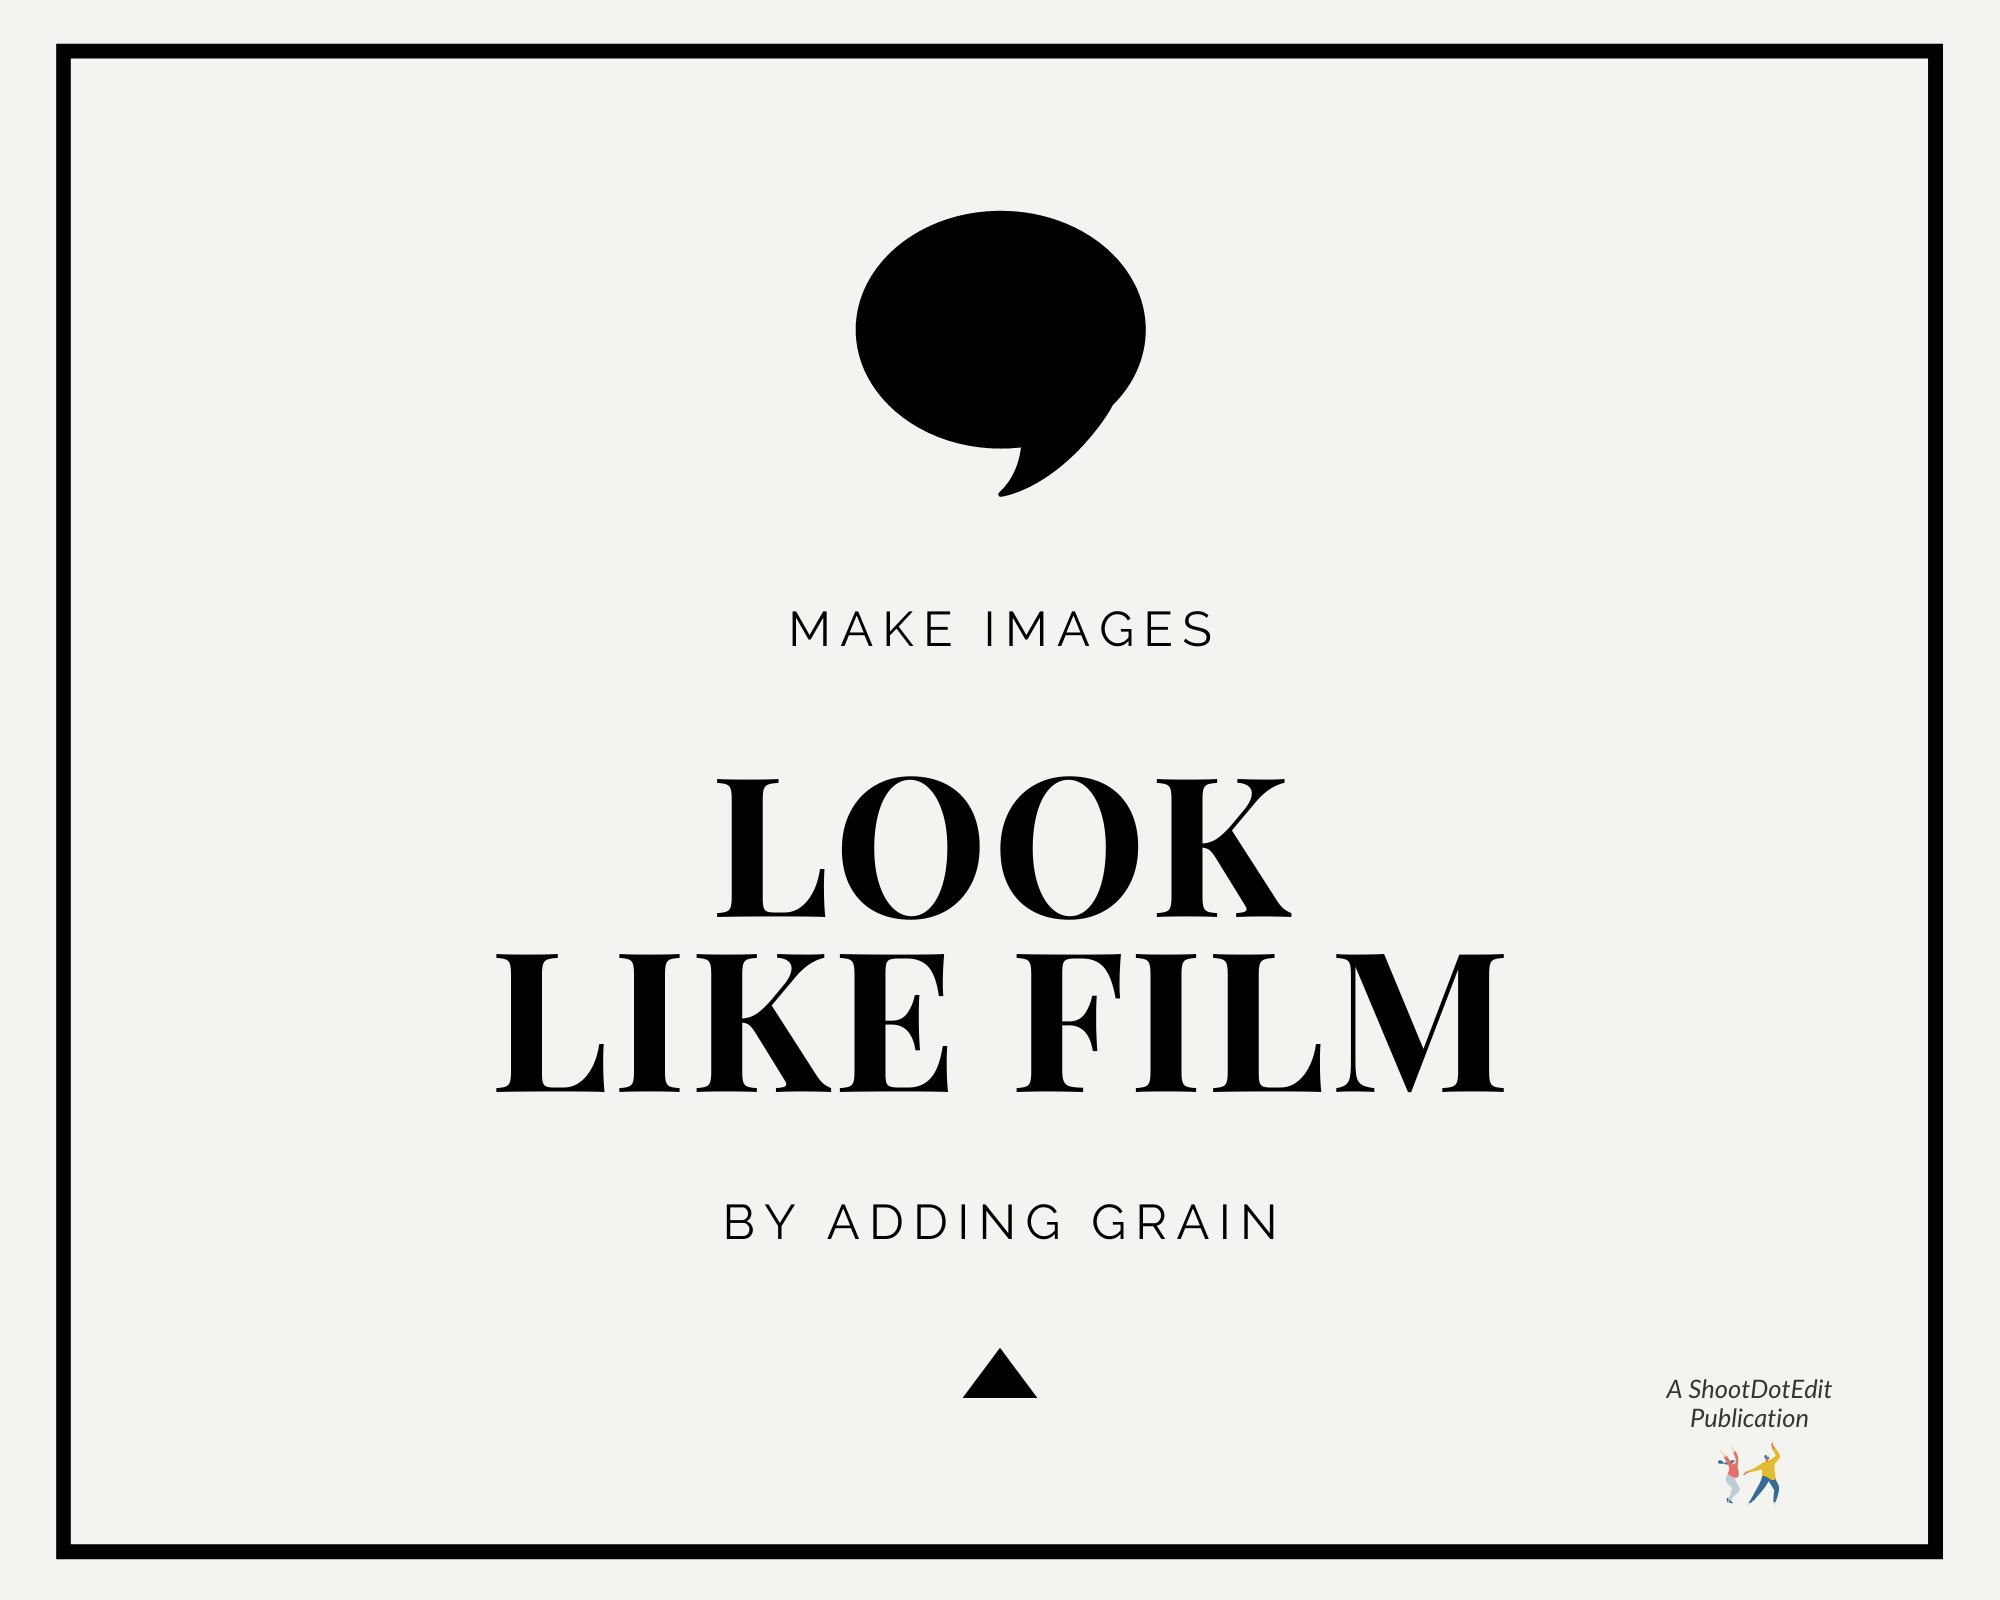 Infographic stating make images look like film by adding grain